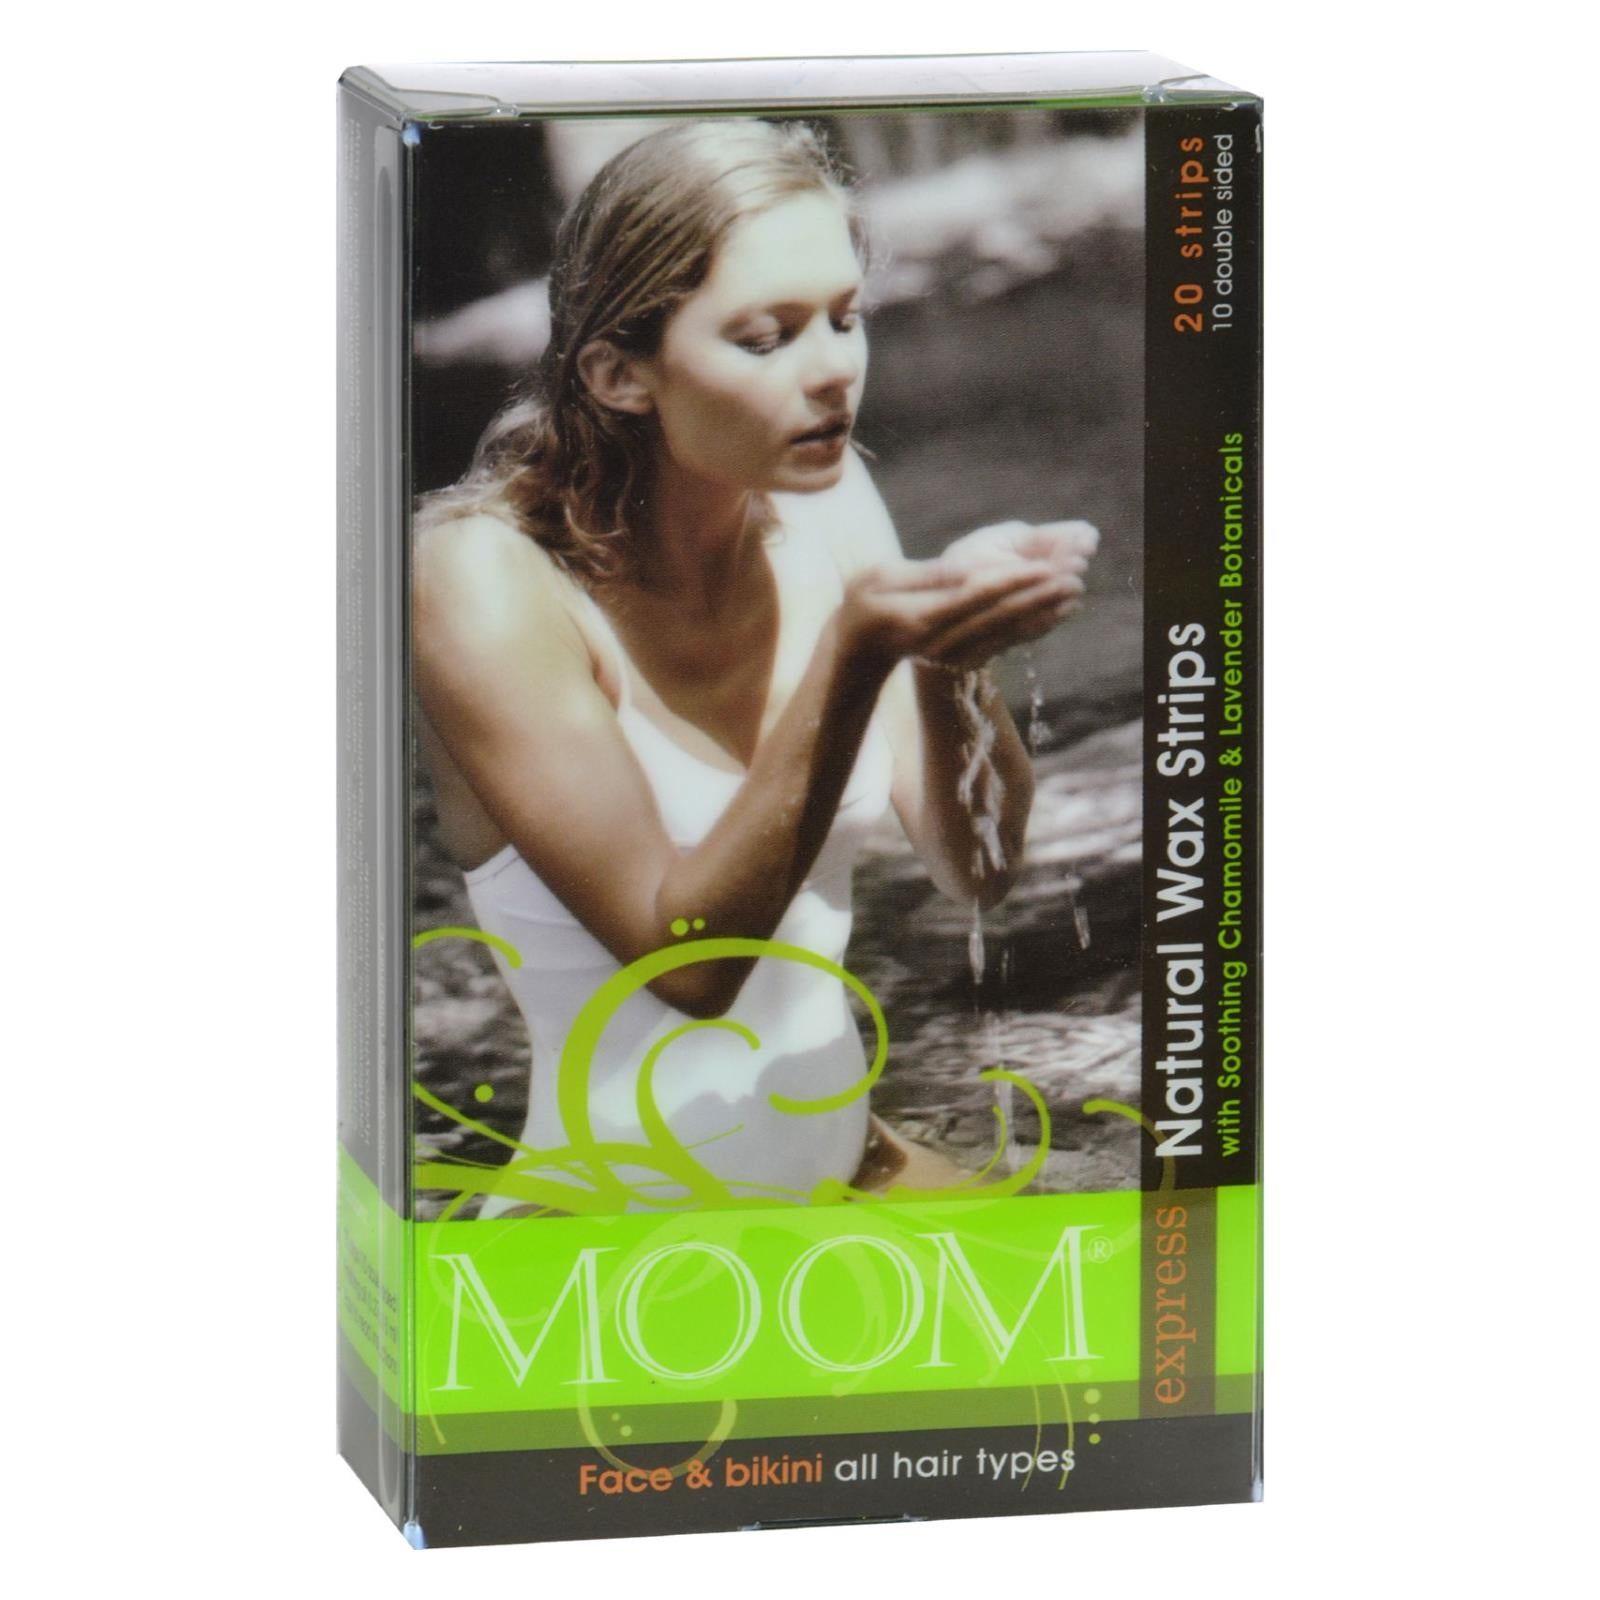 Moom Natural Wax Strips With Soothing Chamomile And Lavender - 20 Strips HG0109710